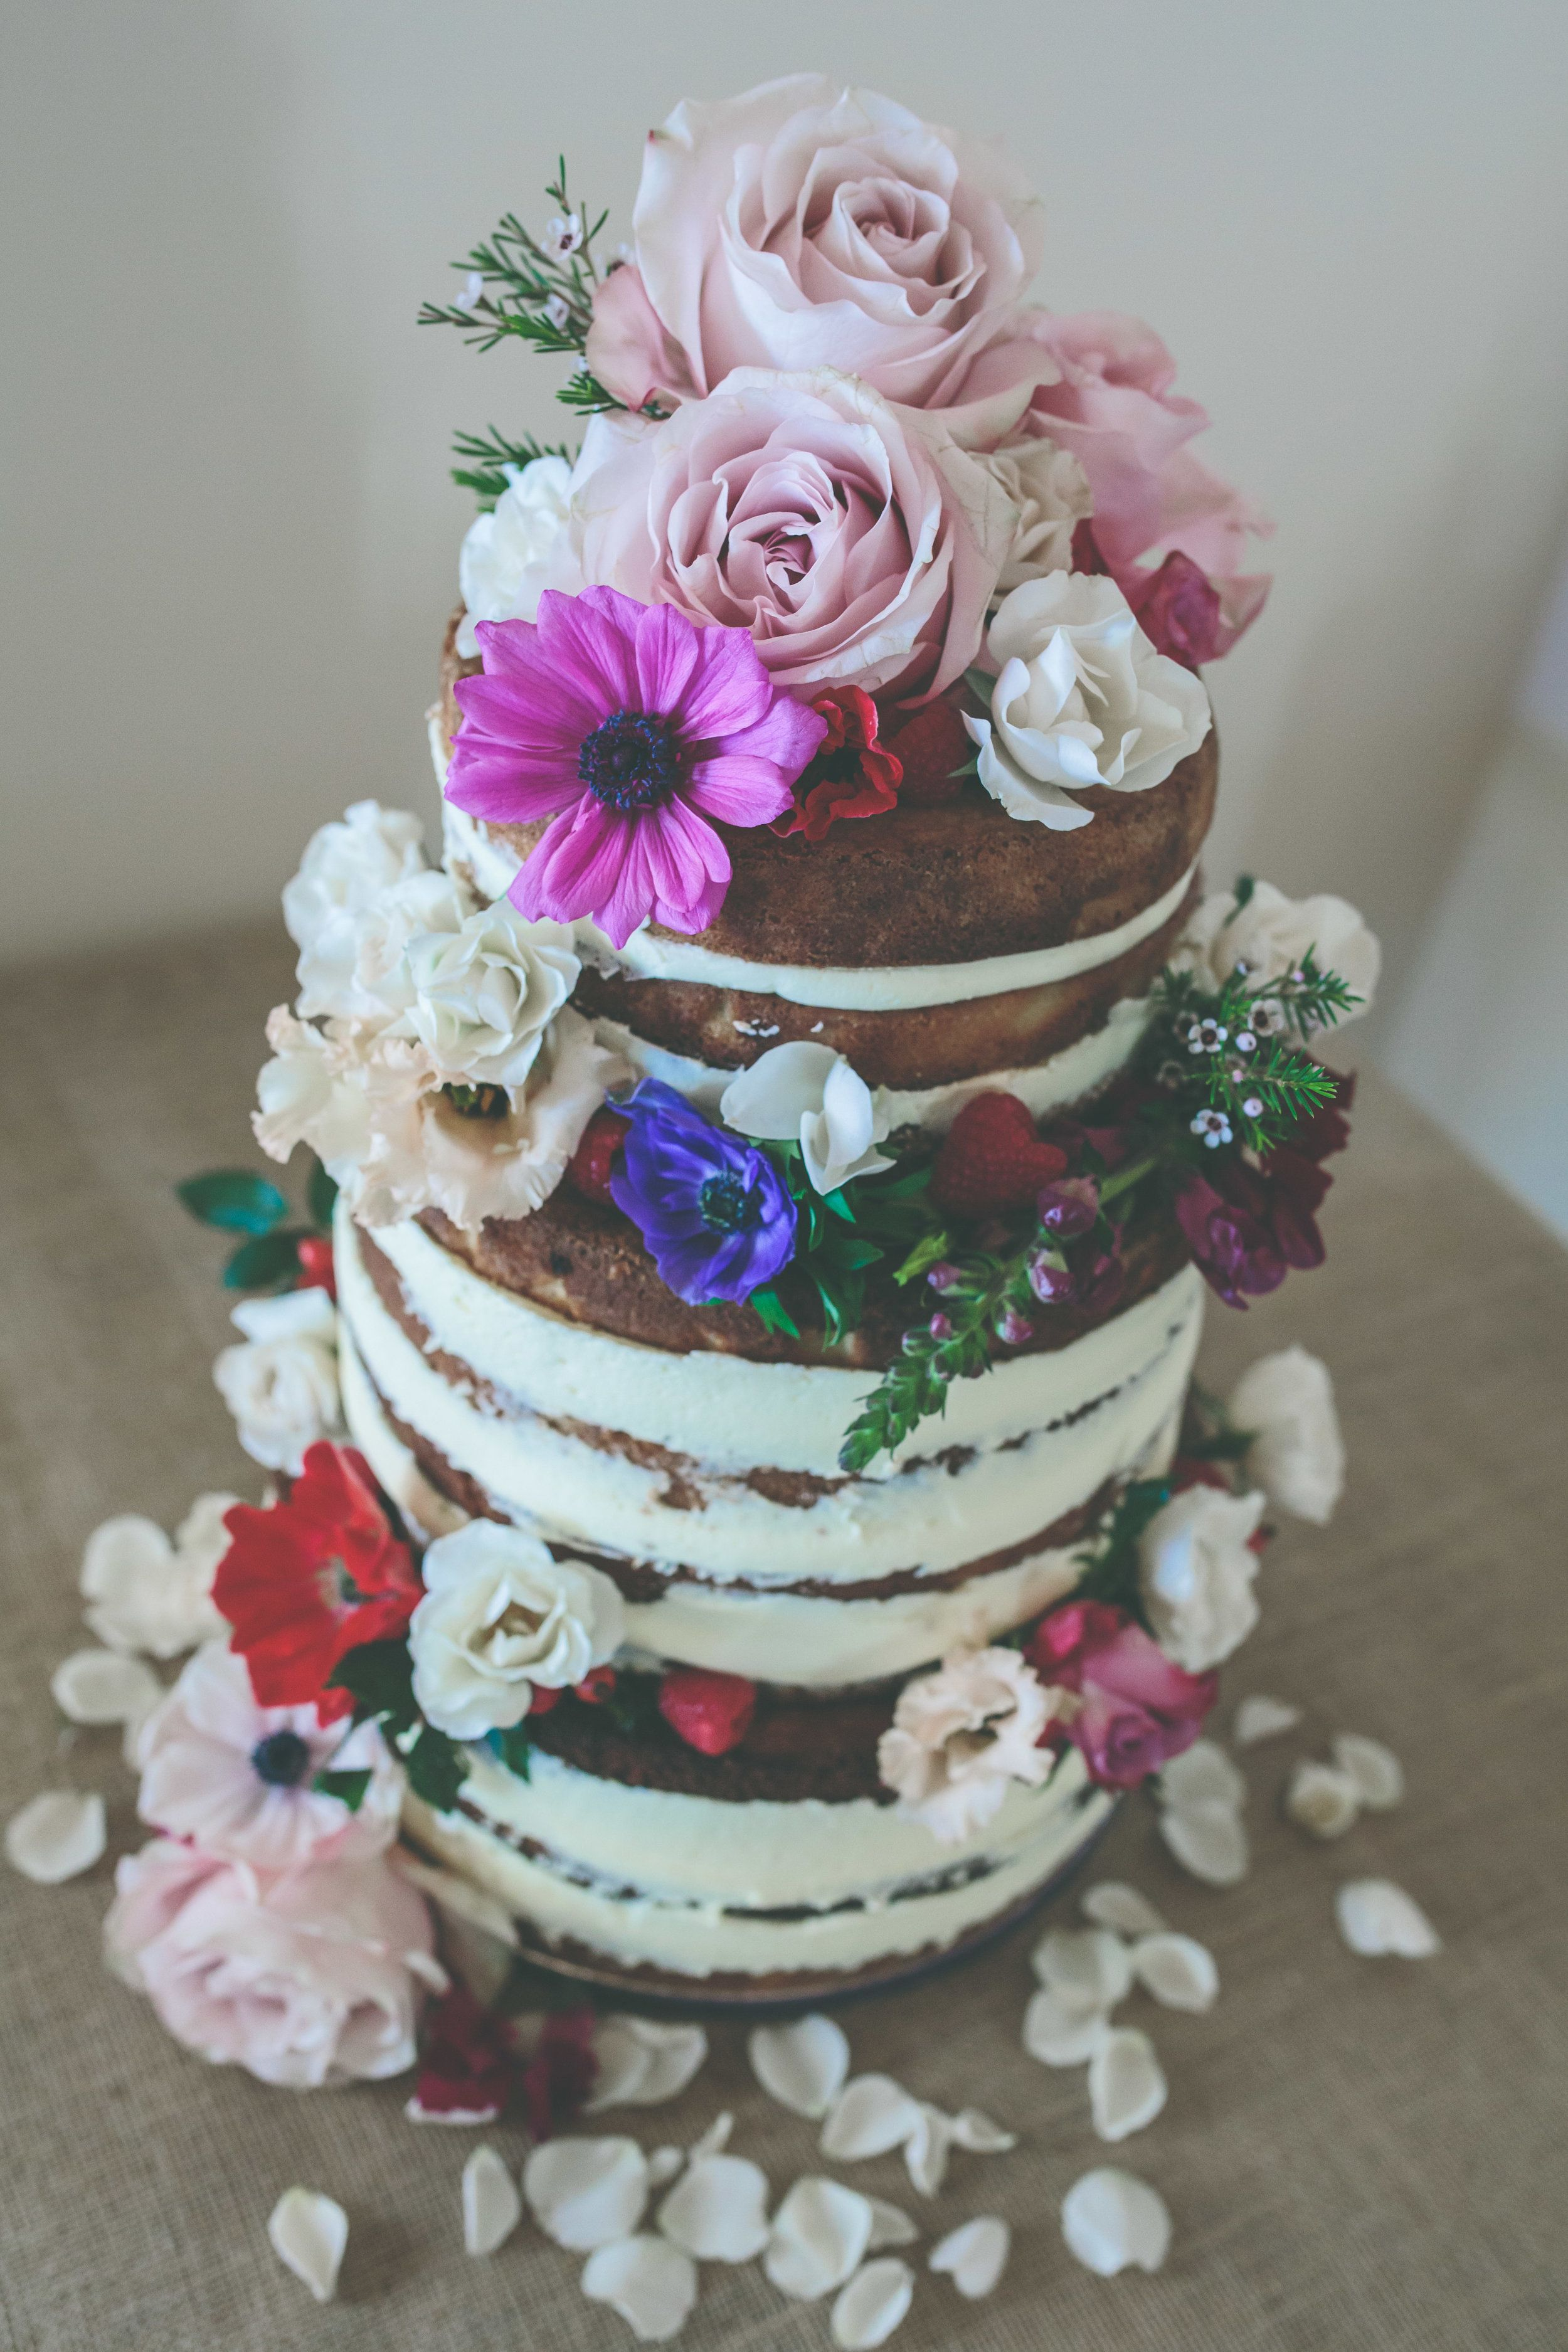 Real Flower Wedding Cake Decoration On Hessian Table Rustic Decor For Rural Shropshire